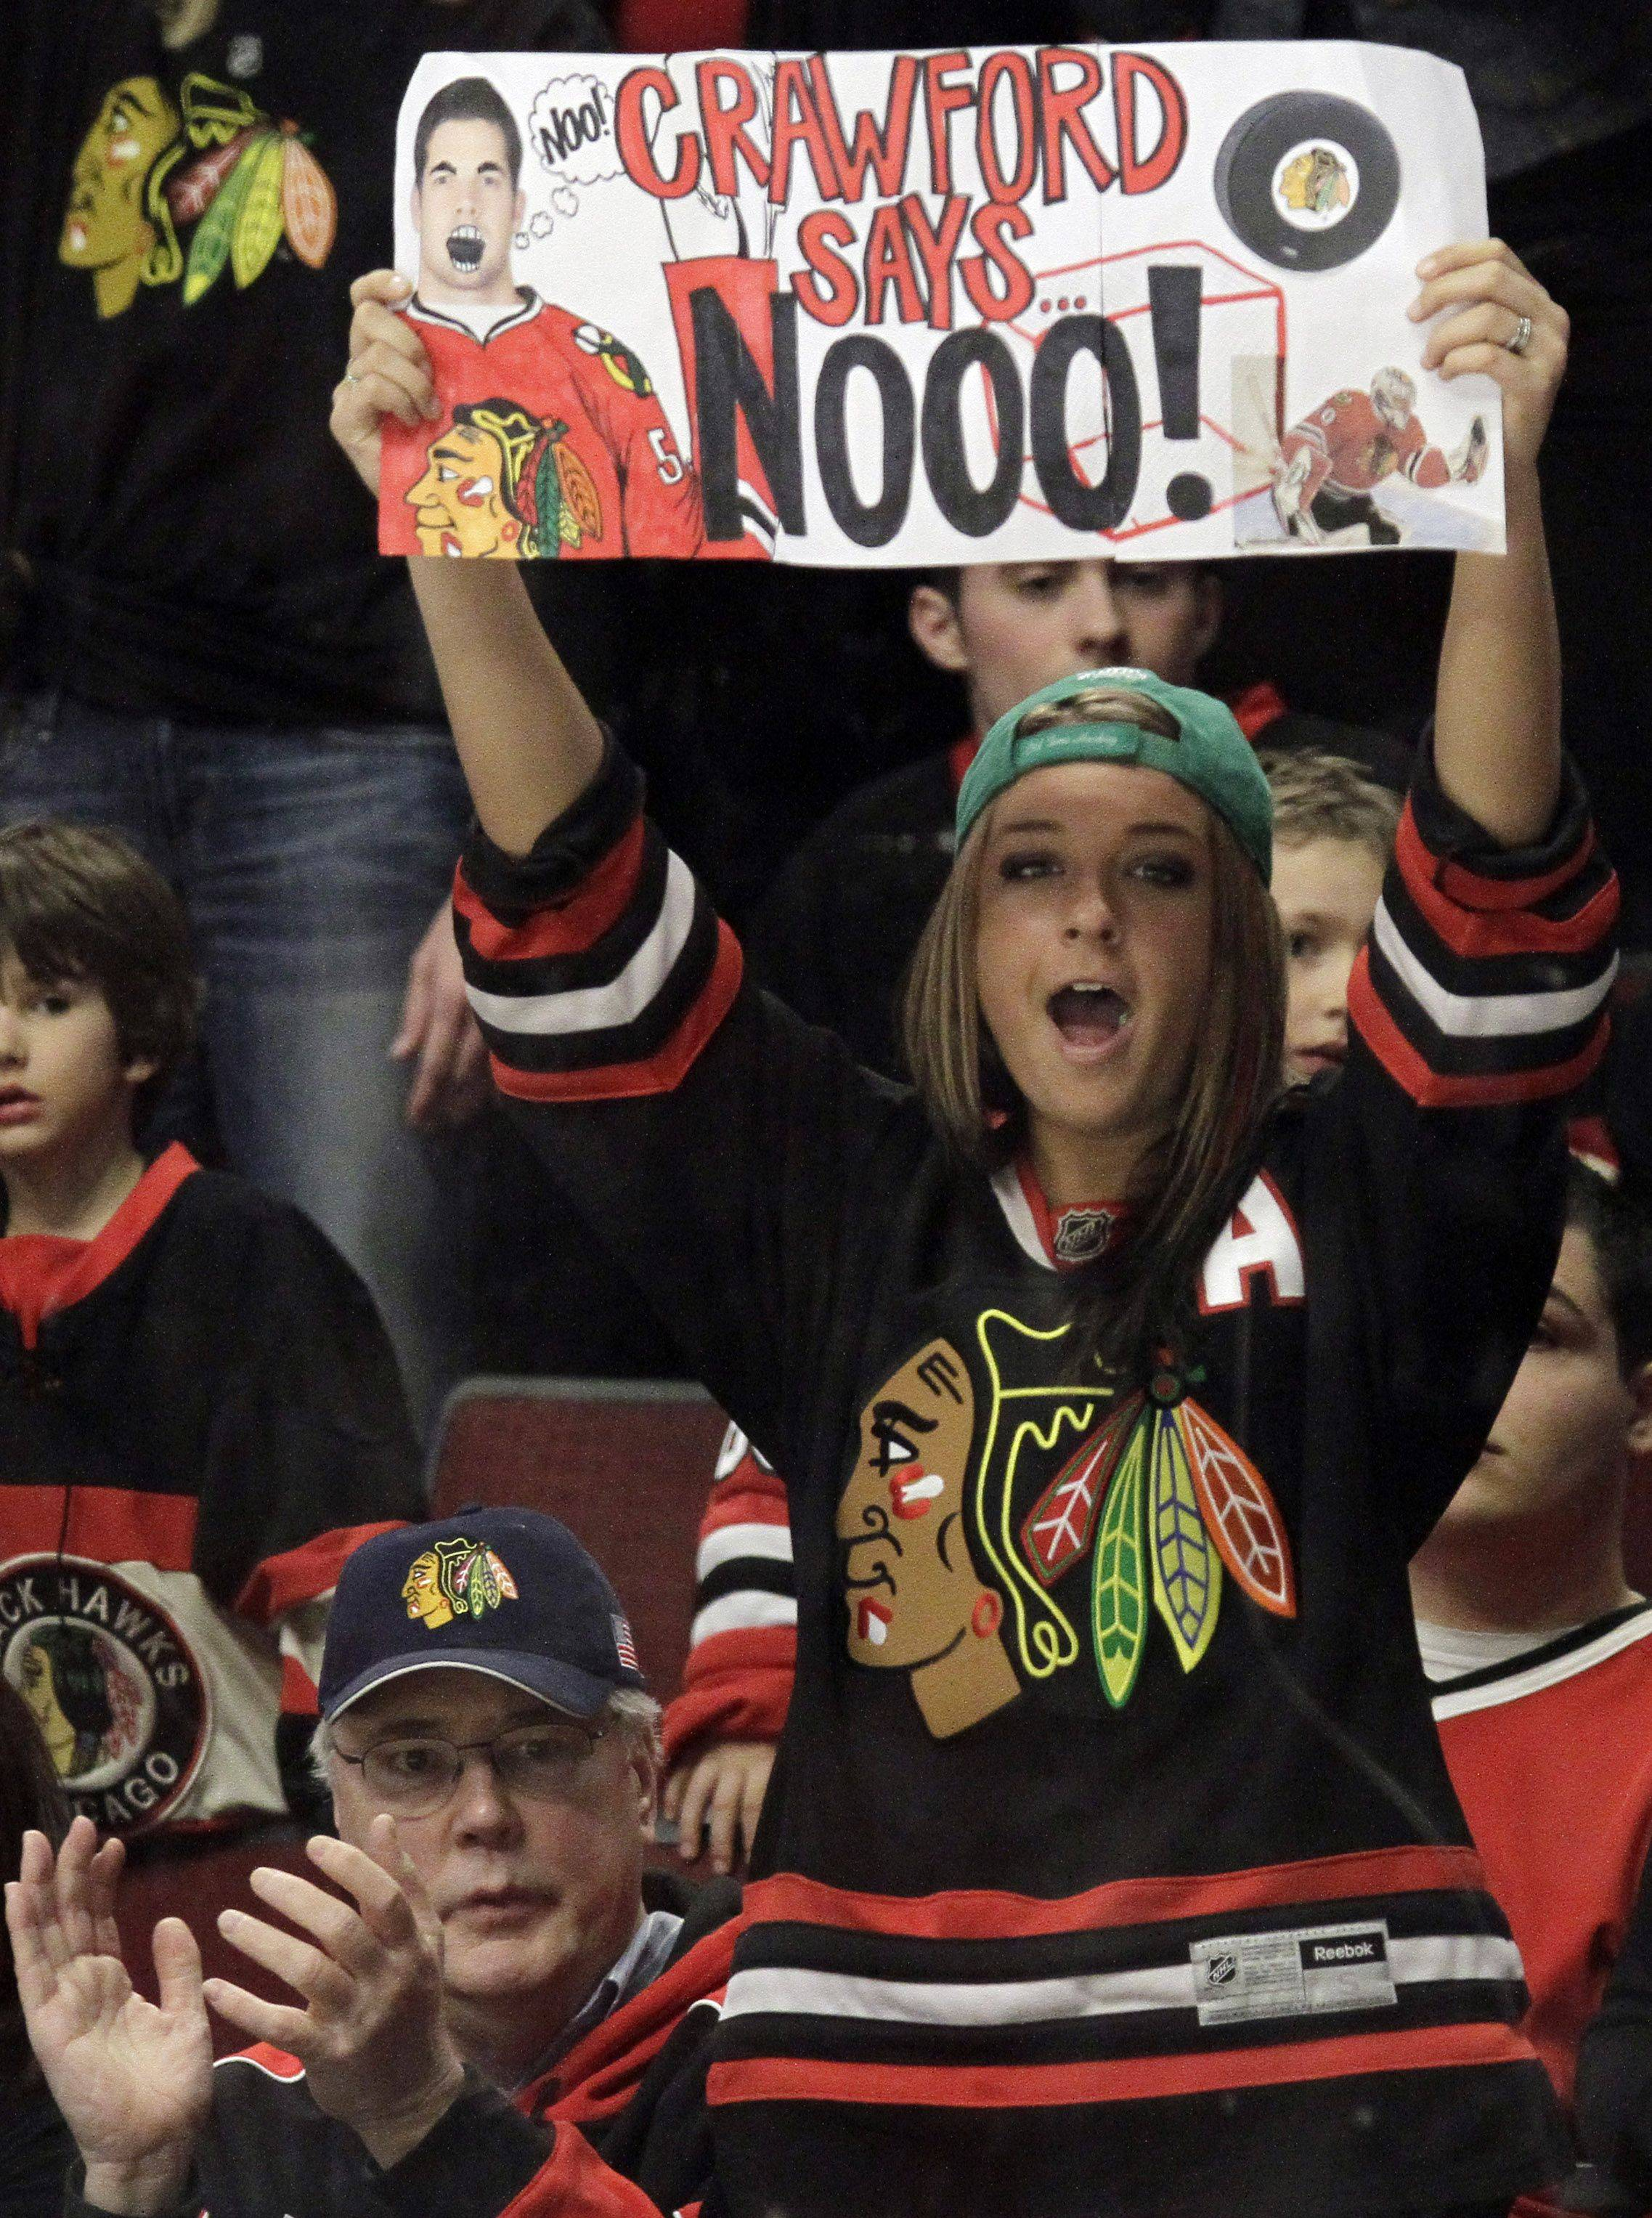 A Blackhawks fan holds a sign during the overtime period of an NHL hockey game against the St. Louis Blues in Chicago on Wednesday. The Blackhawks won 4-3 in overtime, and Patrick Sharp returned to the lineup after missing more than two weeks with a knee injury.